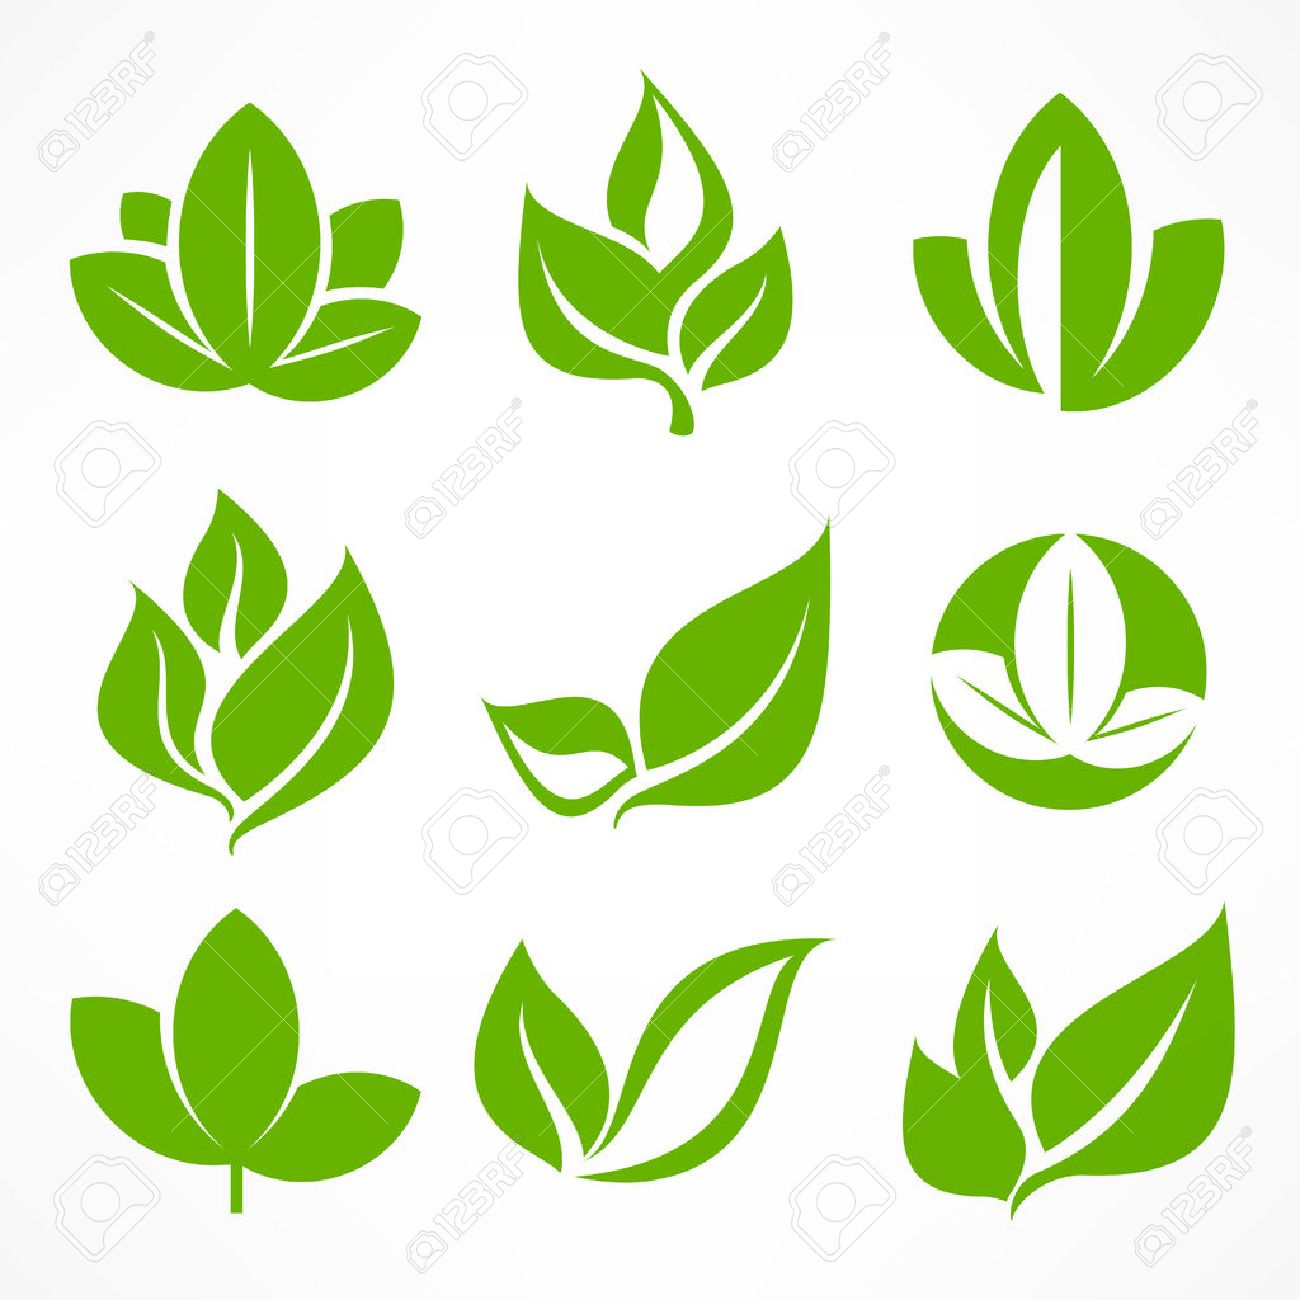 144 335 vector leaf stock vector illustration and royalty free rh 123rf com leaf vector free leaf vector free